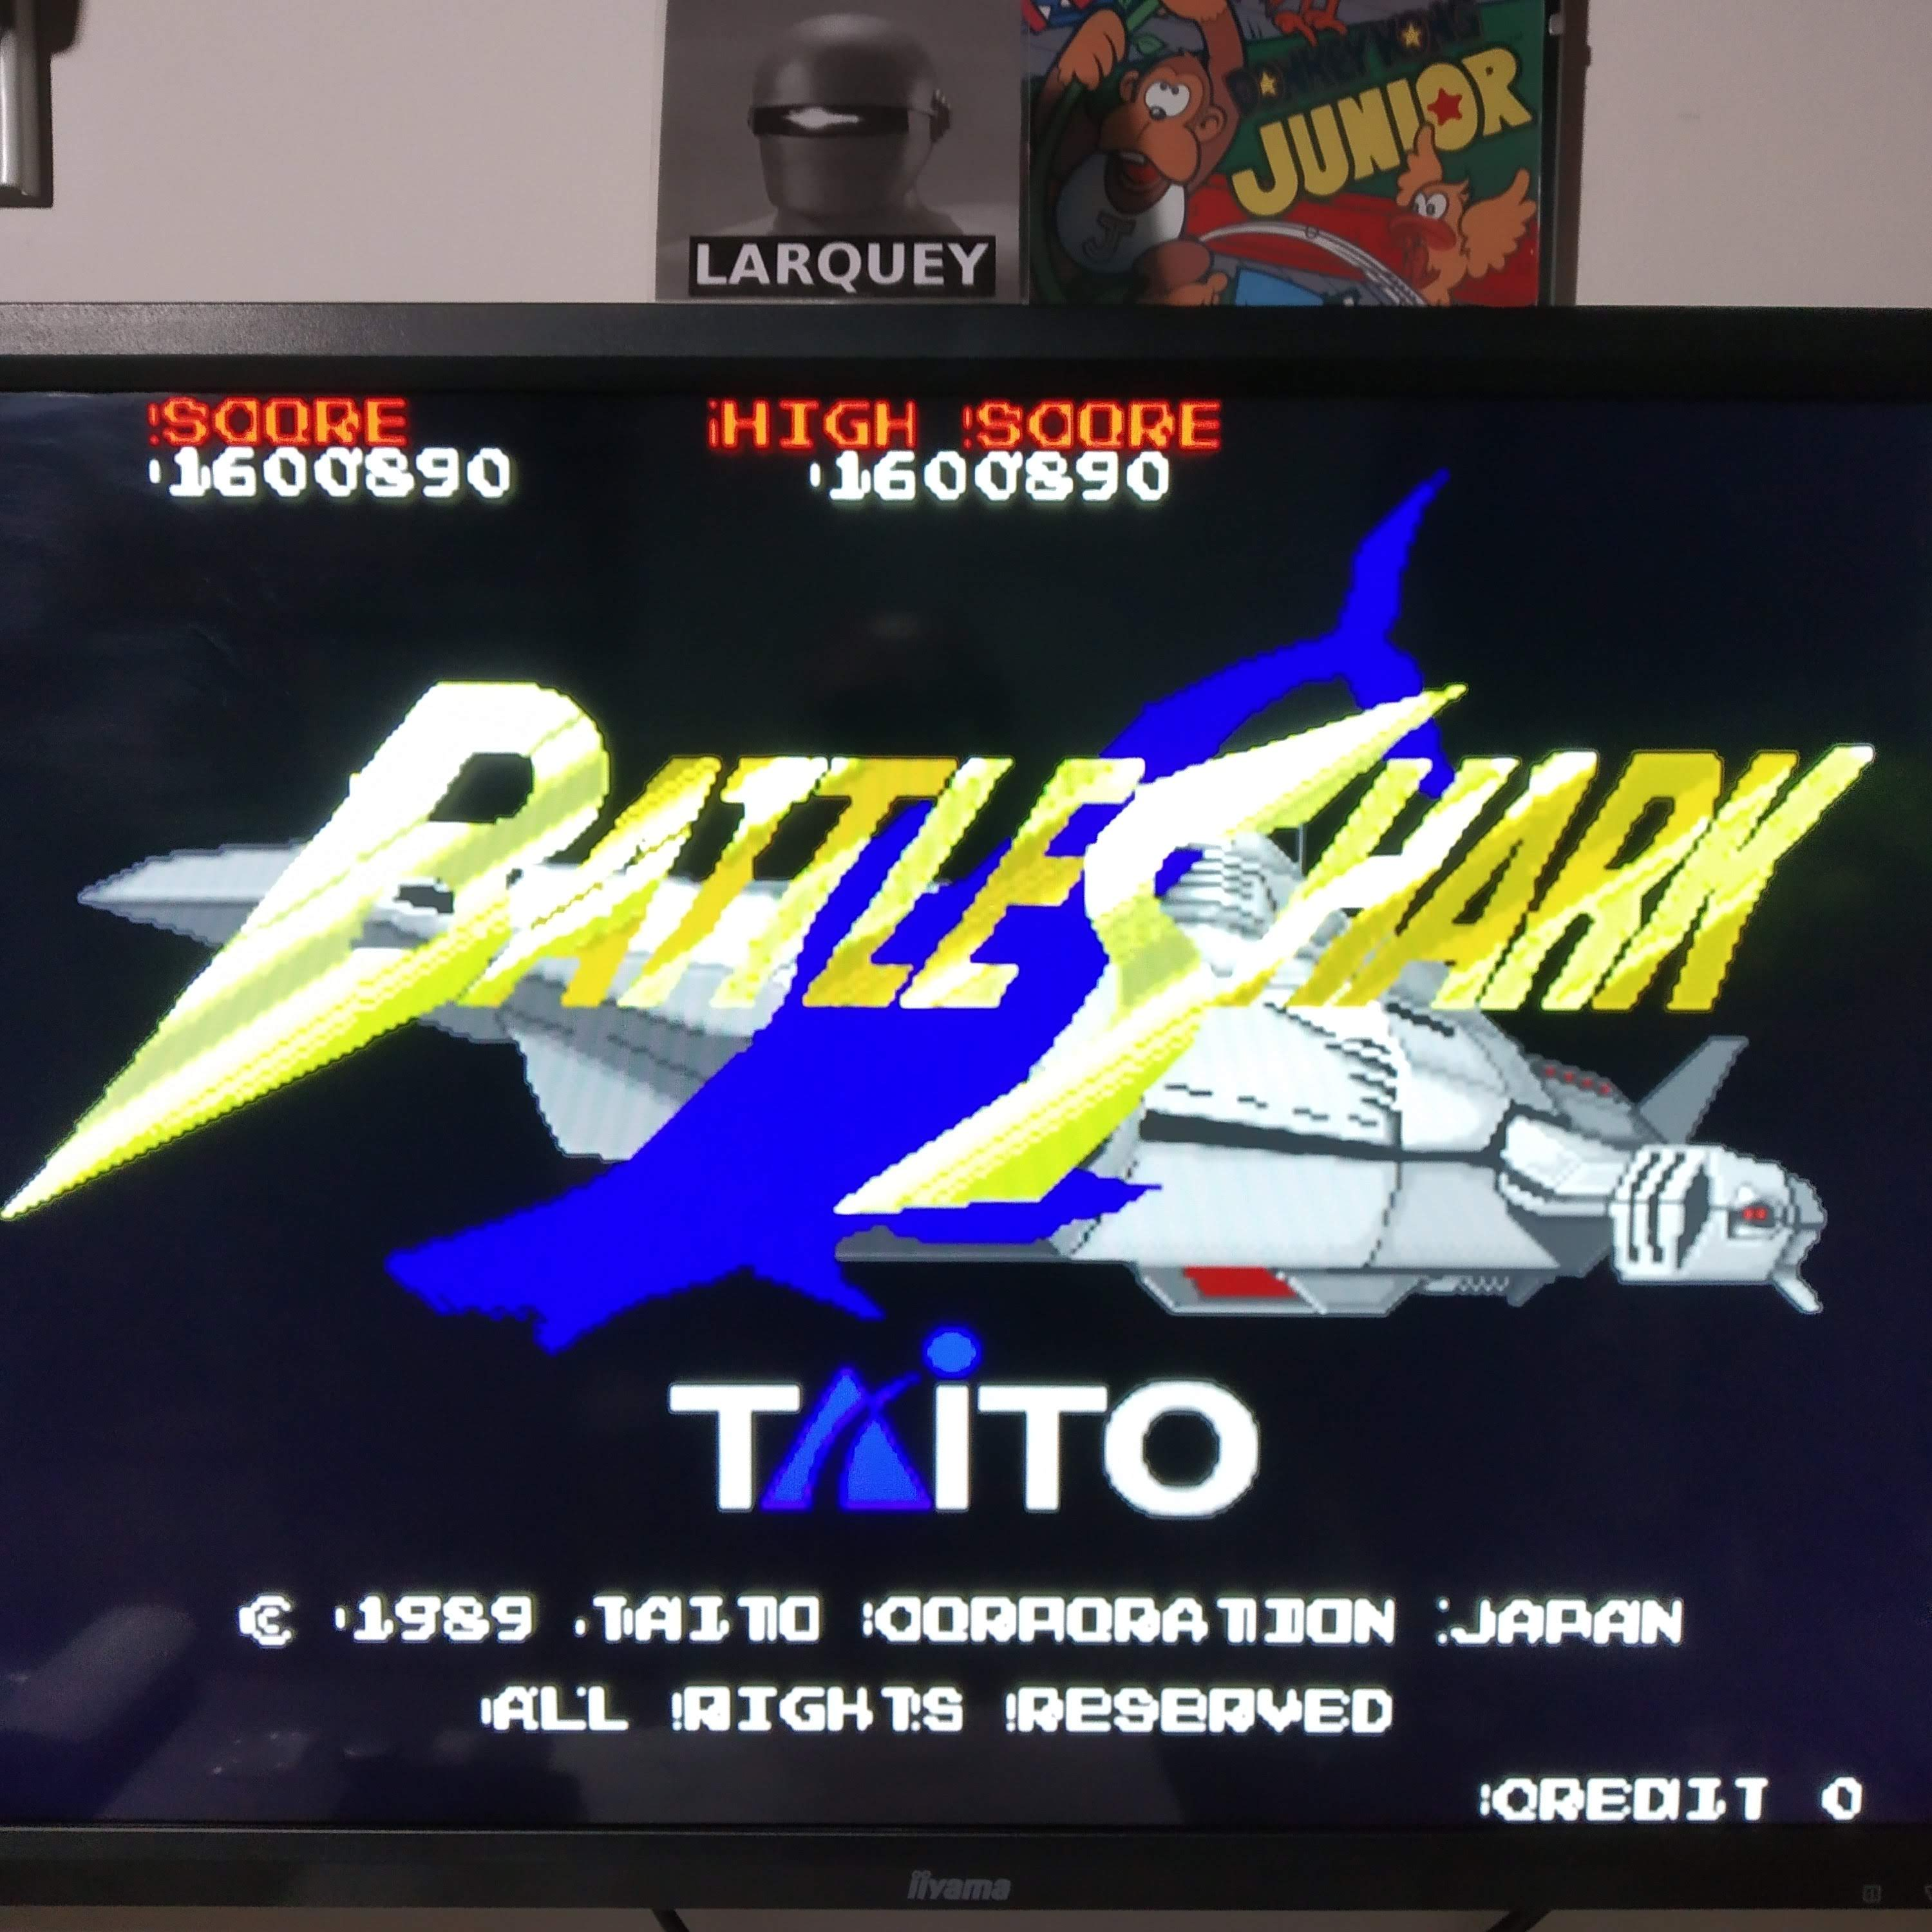 Larquey: Taito Legends: Battle Shark (Playstation 2 Emulated) 1,600,890 points on 2020-08-08 10:41:19